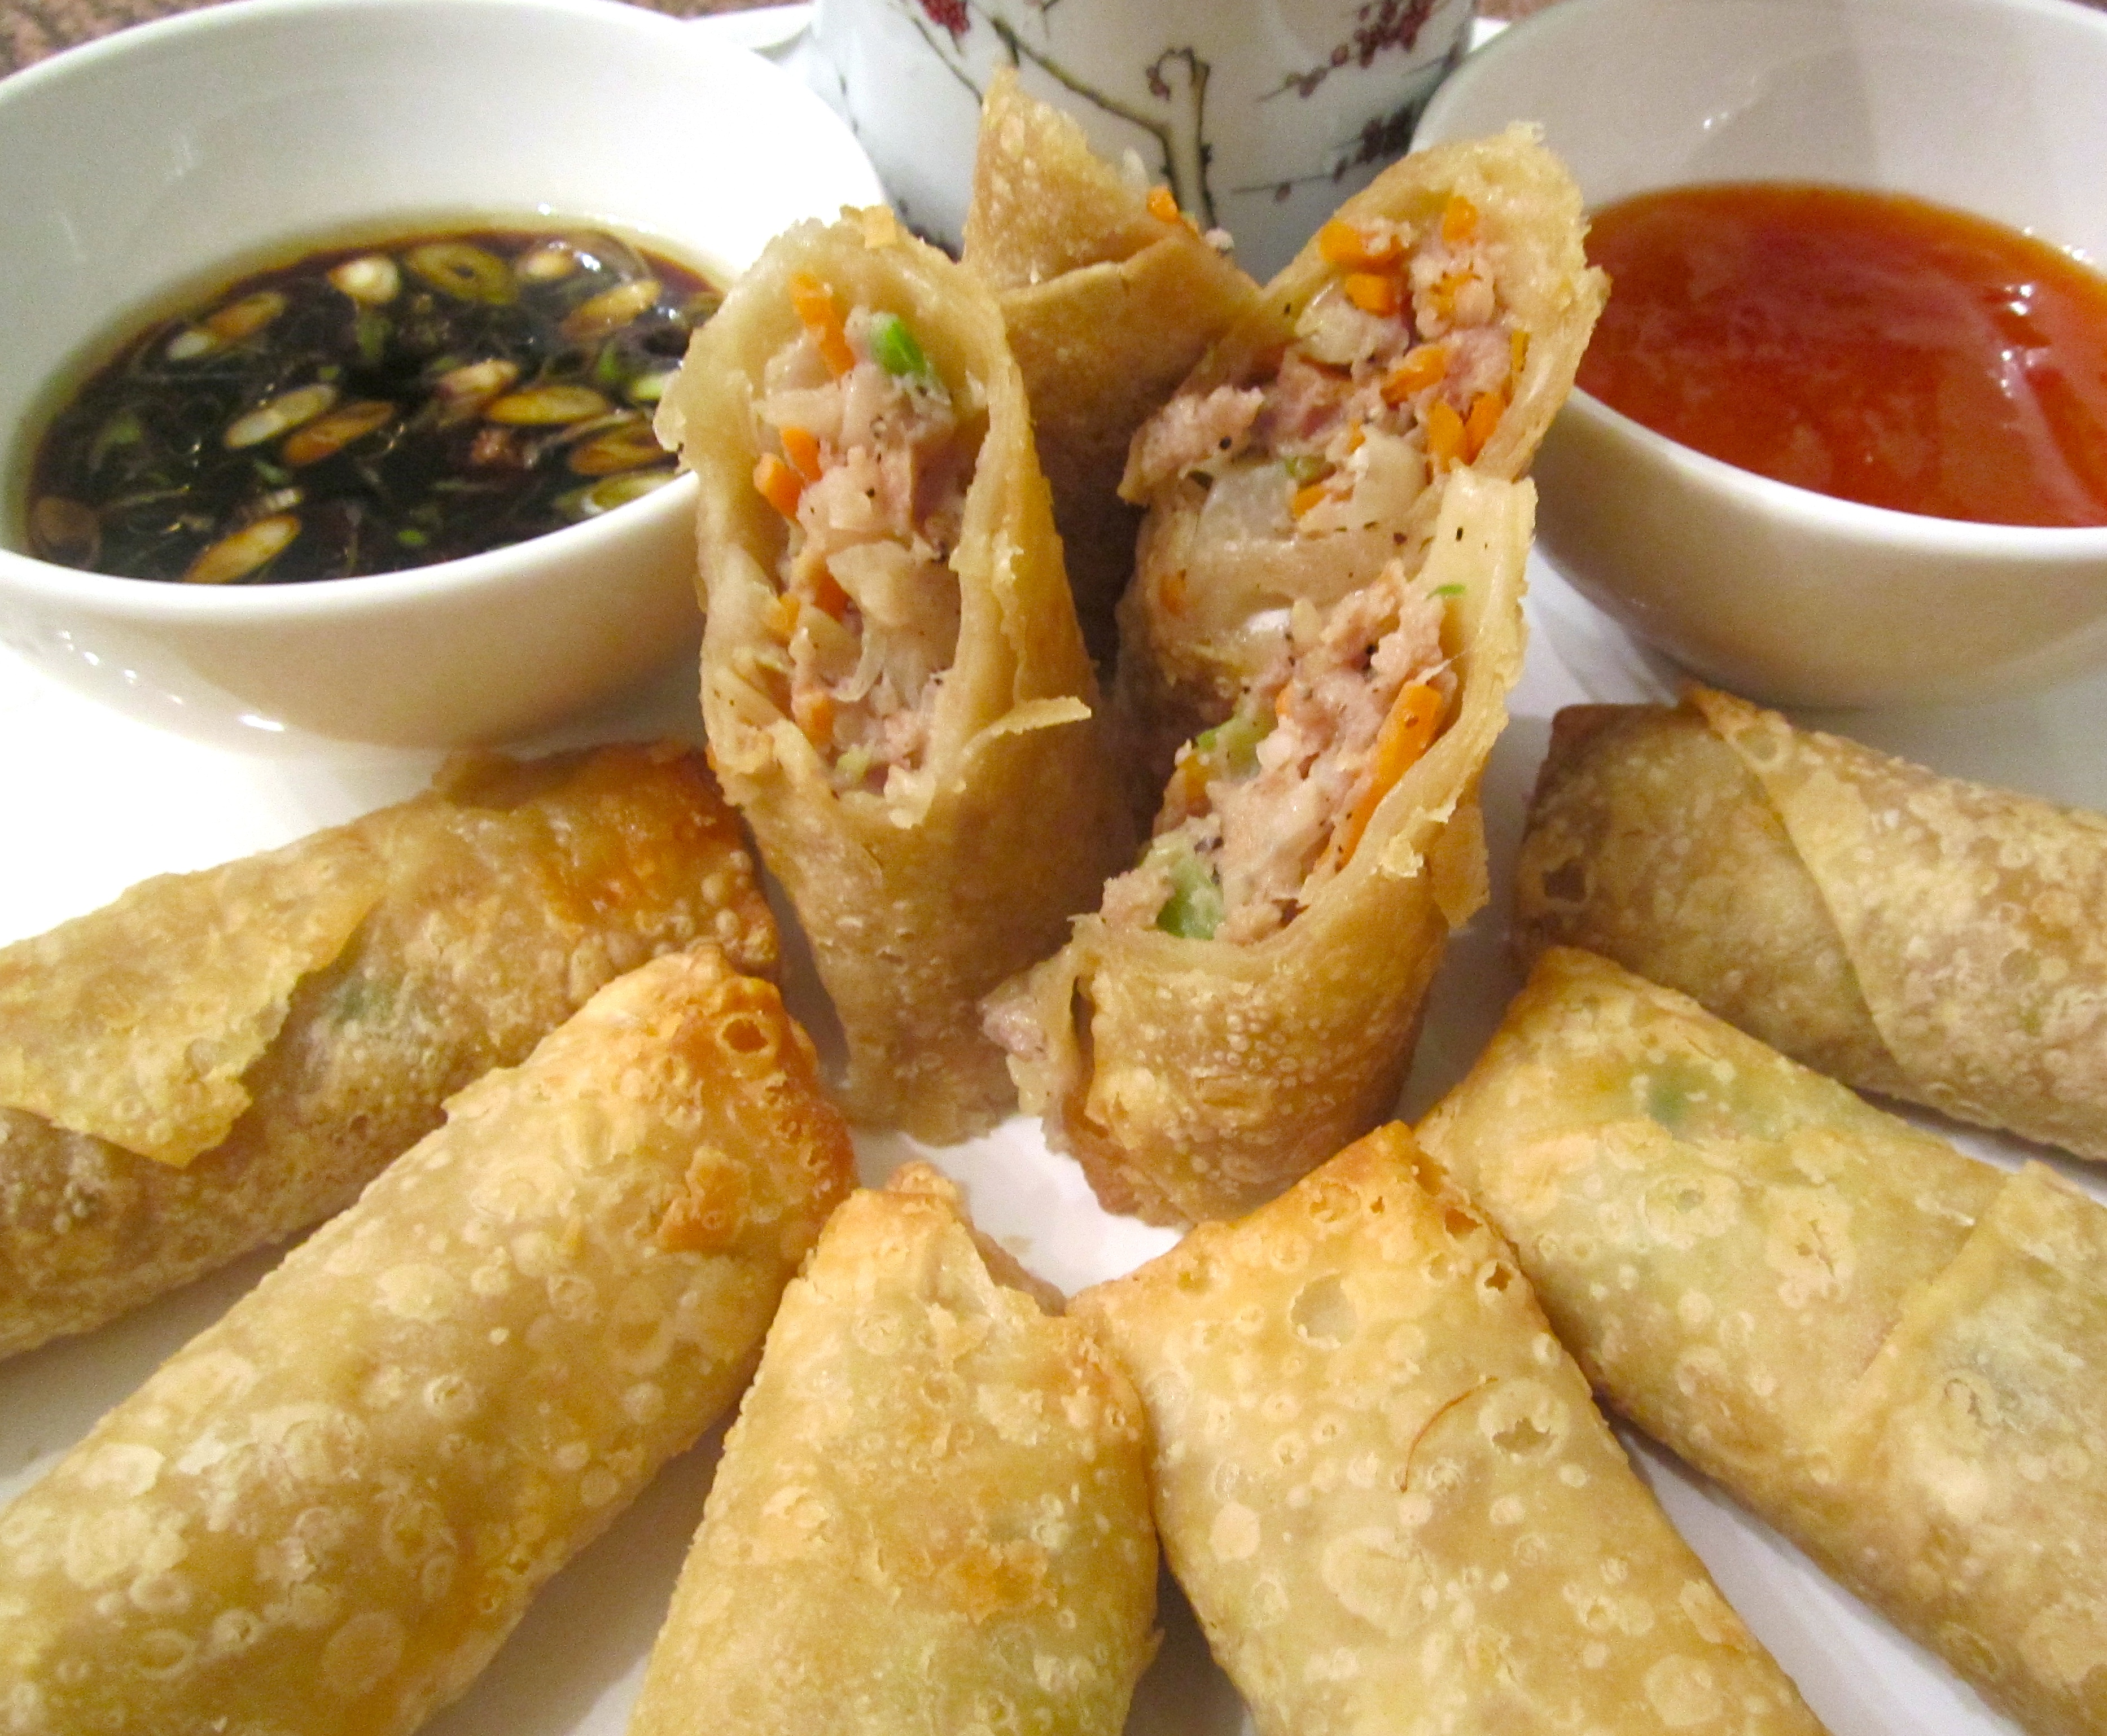 Baked Egg Rolls With Pork And Vegetables